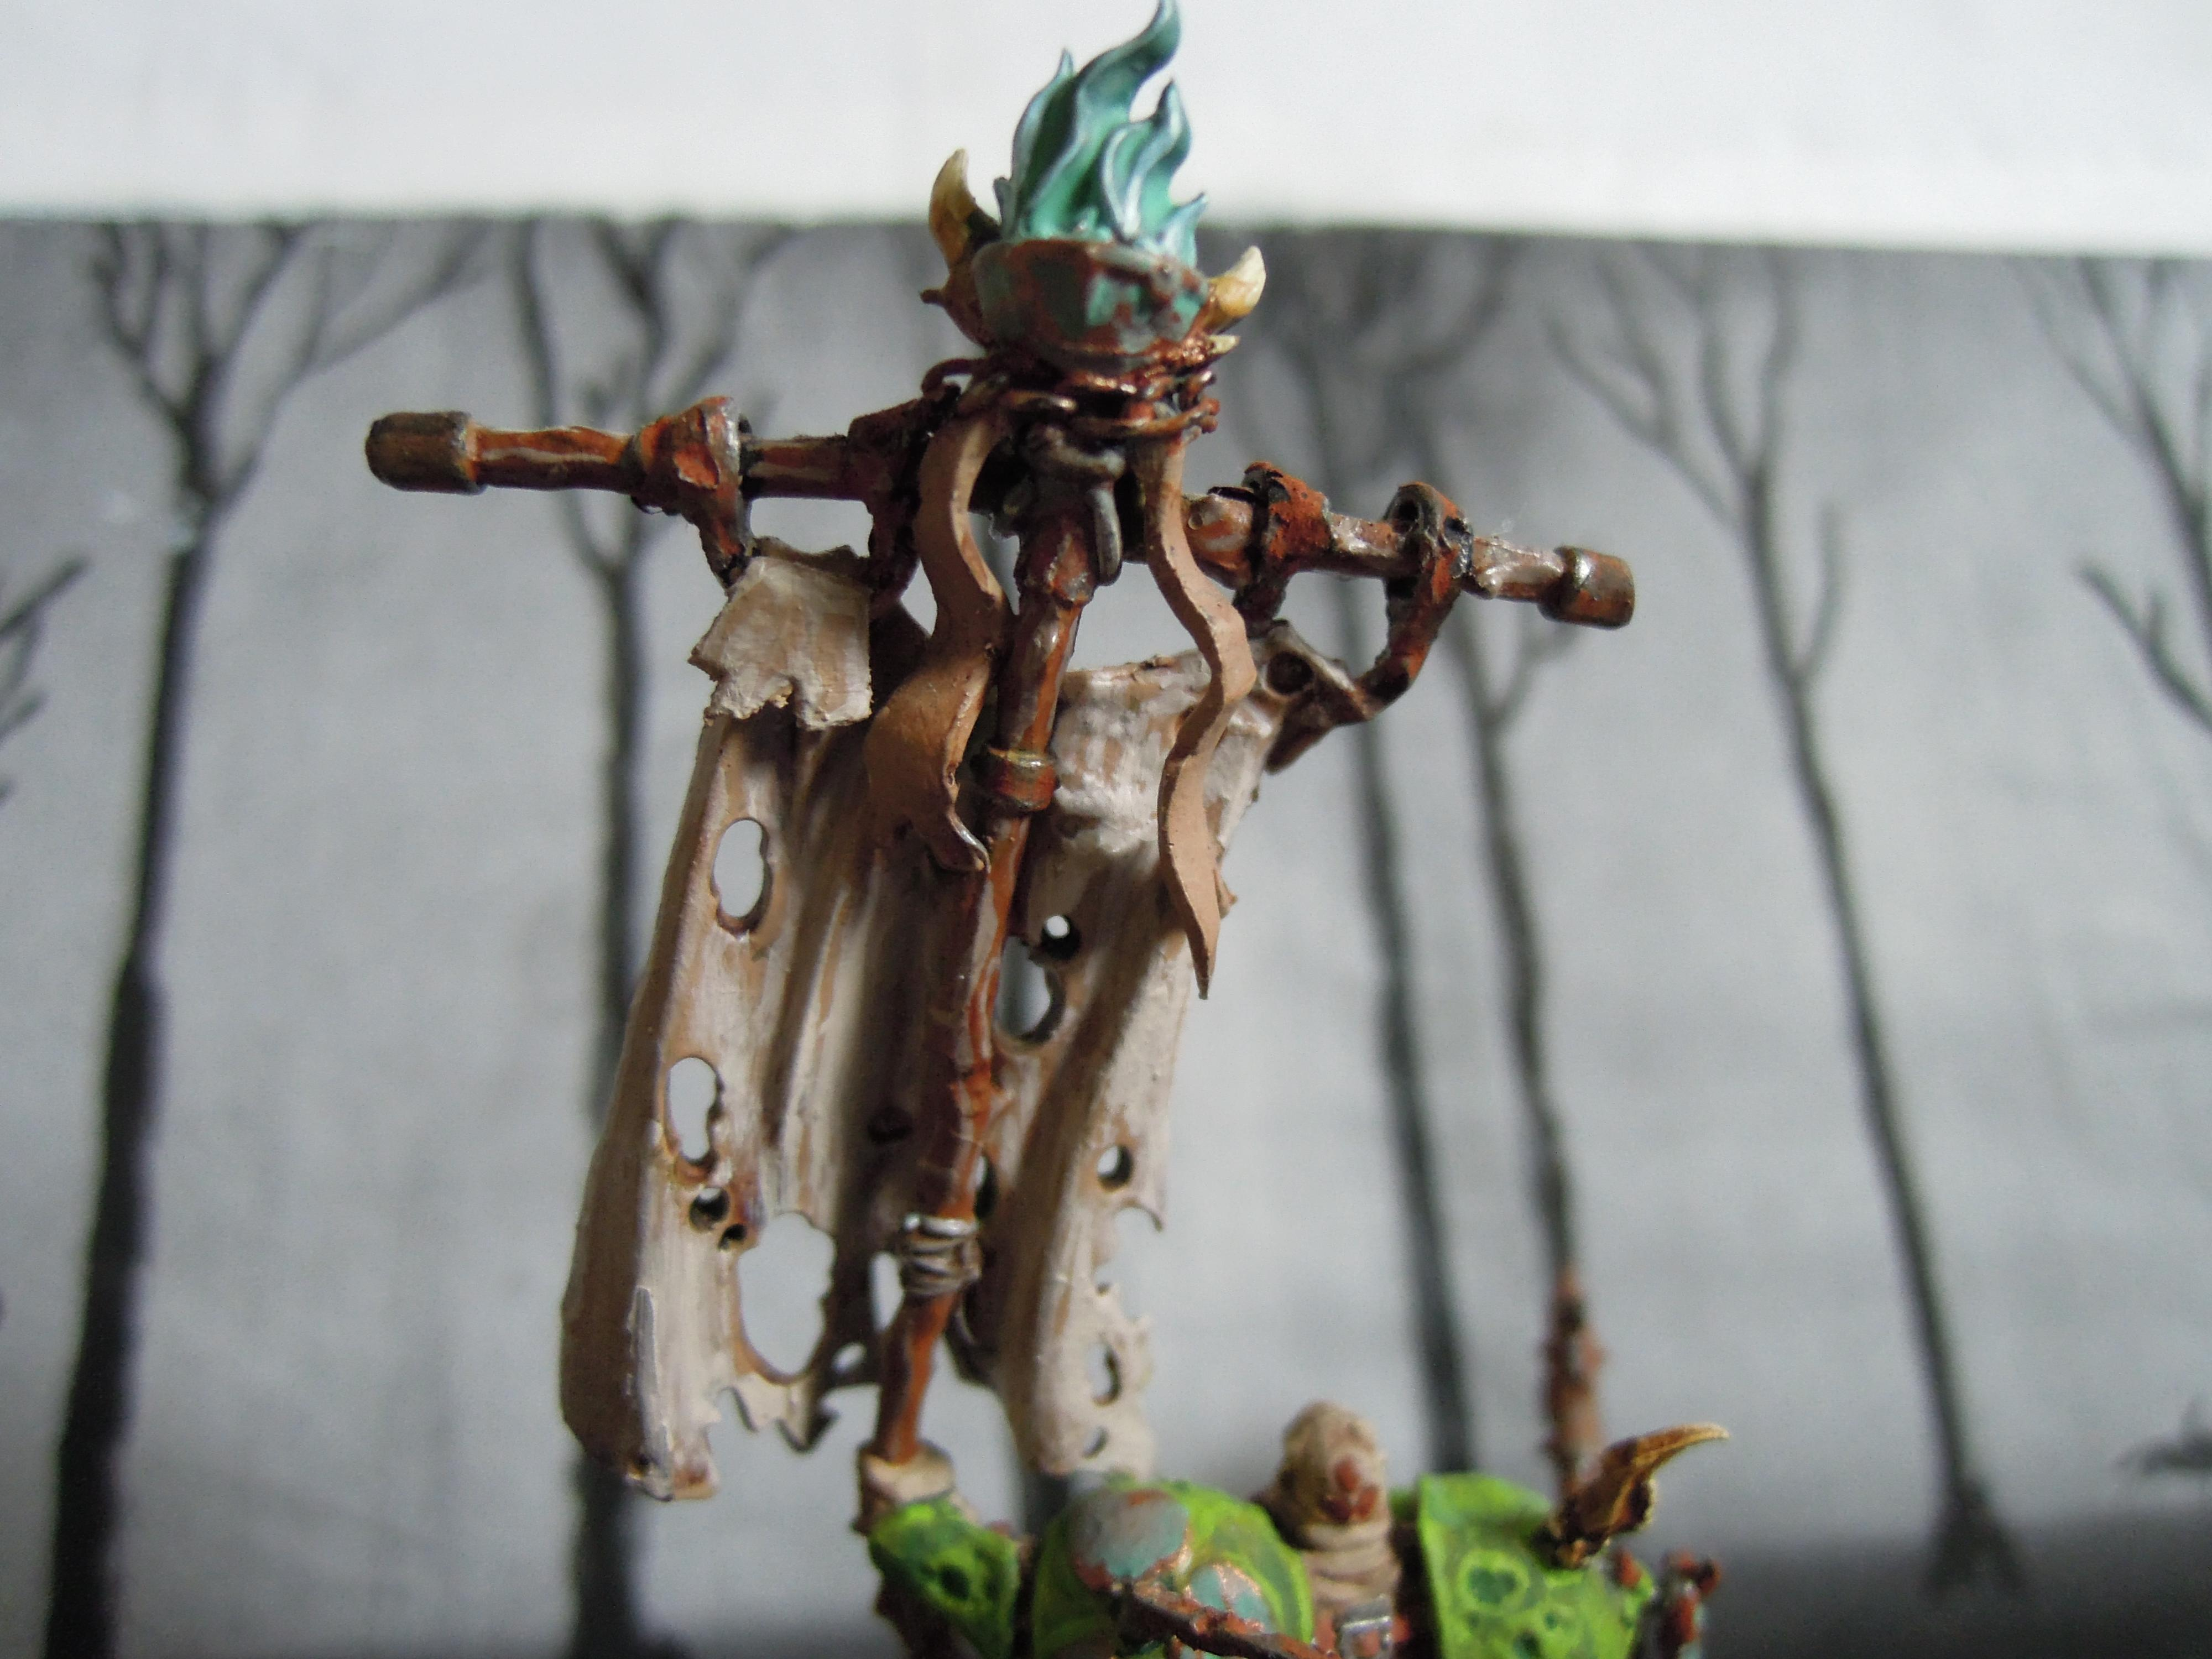 Axe, Banner, Blight, Boils, Buboes, Chaos, Conversion, Glottkin, Lord, Nurgle, Otto Glott, Plague, Rot, Spoilage, Warriors